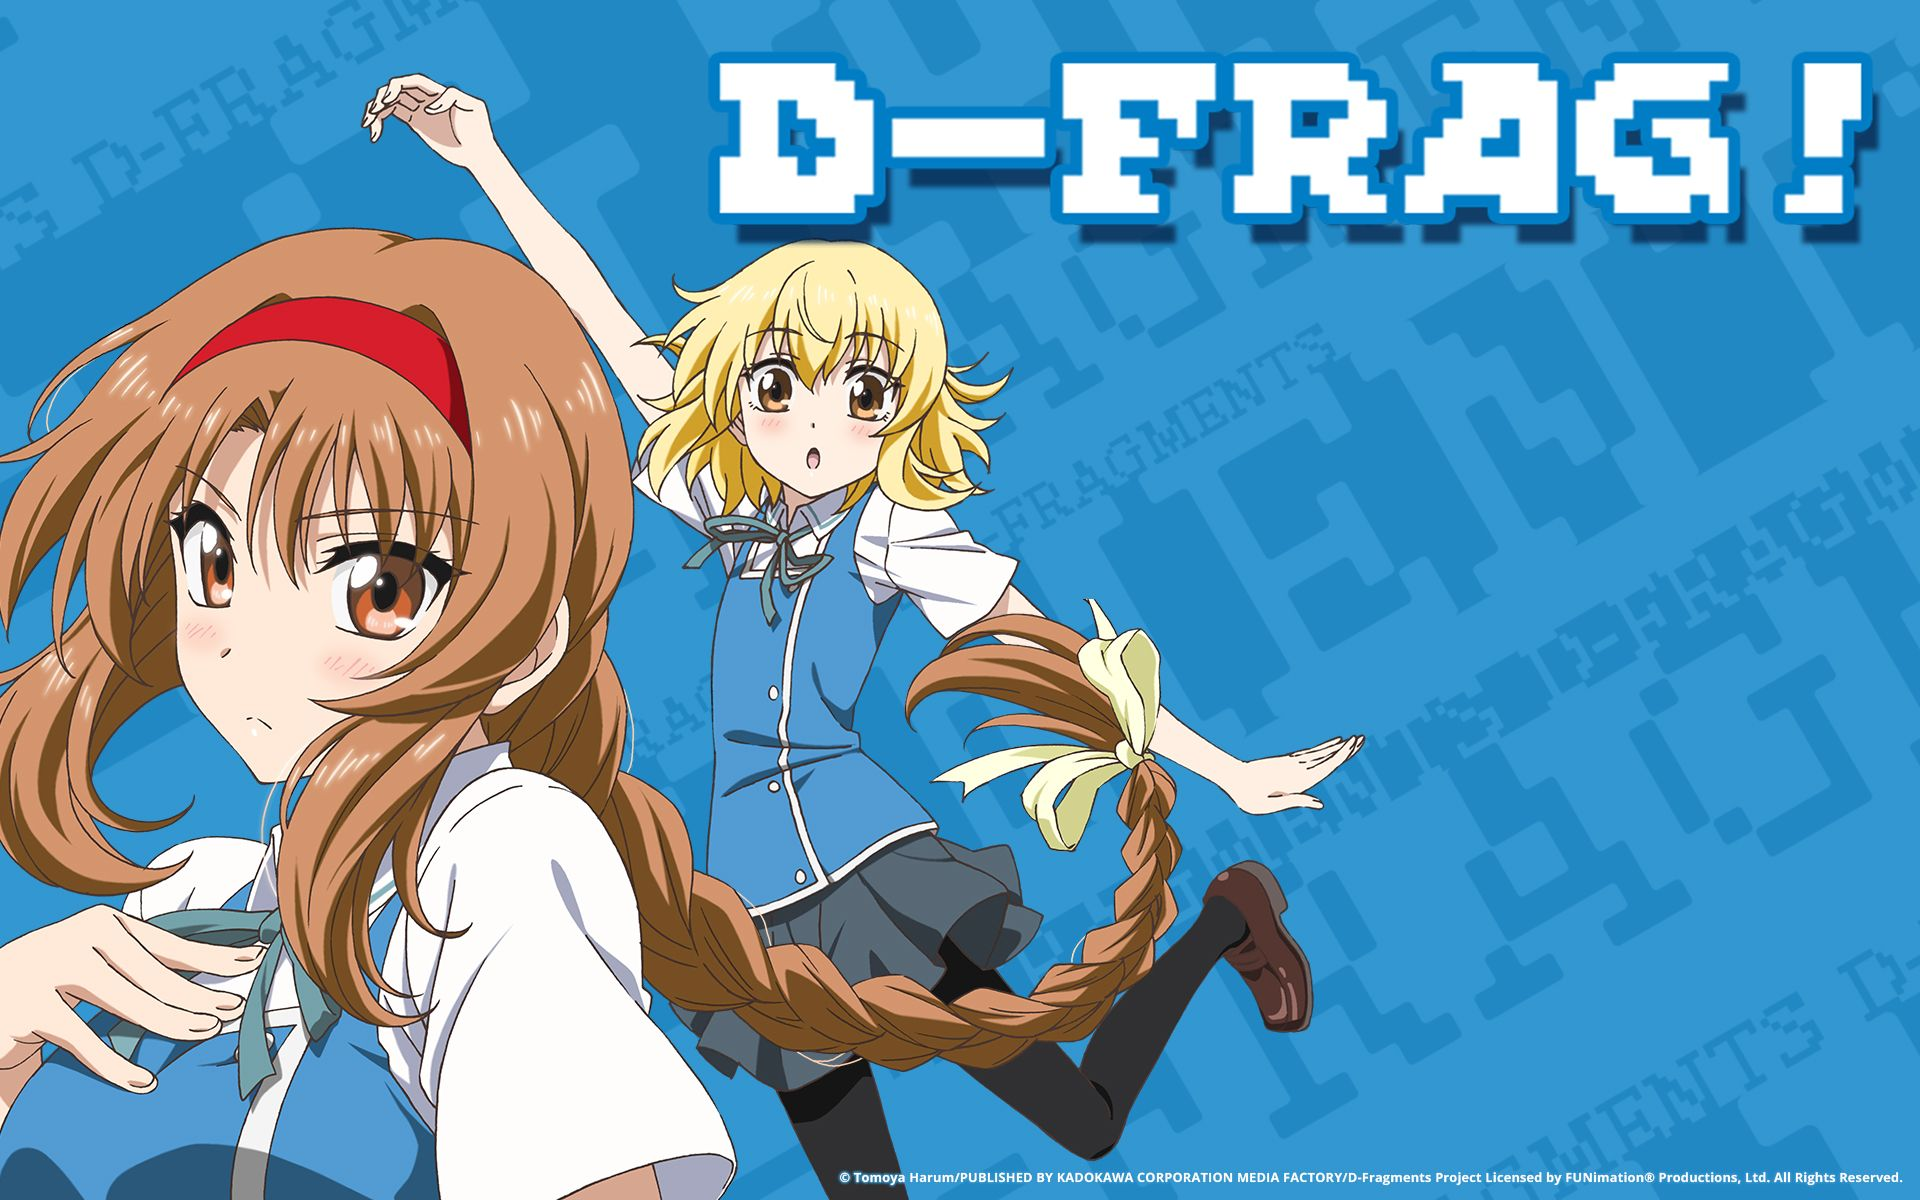 D Frag Anime Girls Takao D Frag Shibasaki Roka Wallpapers